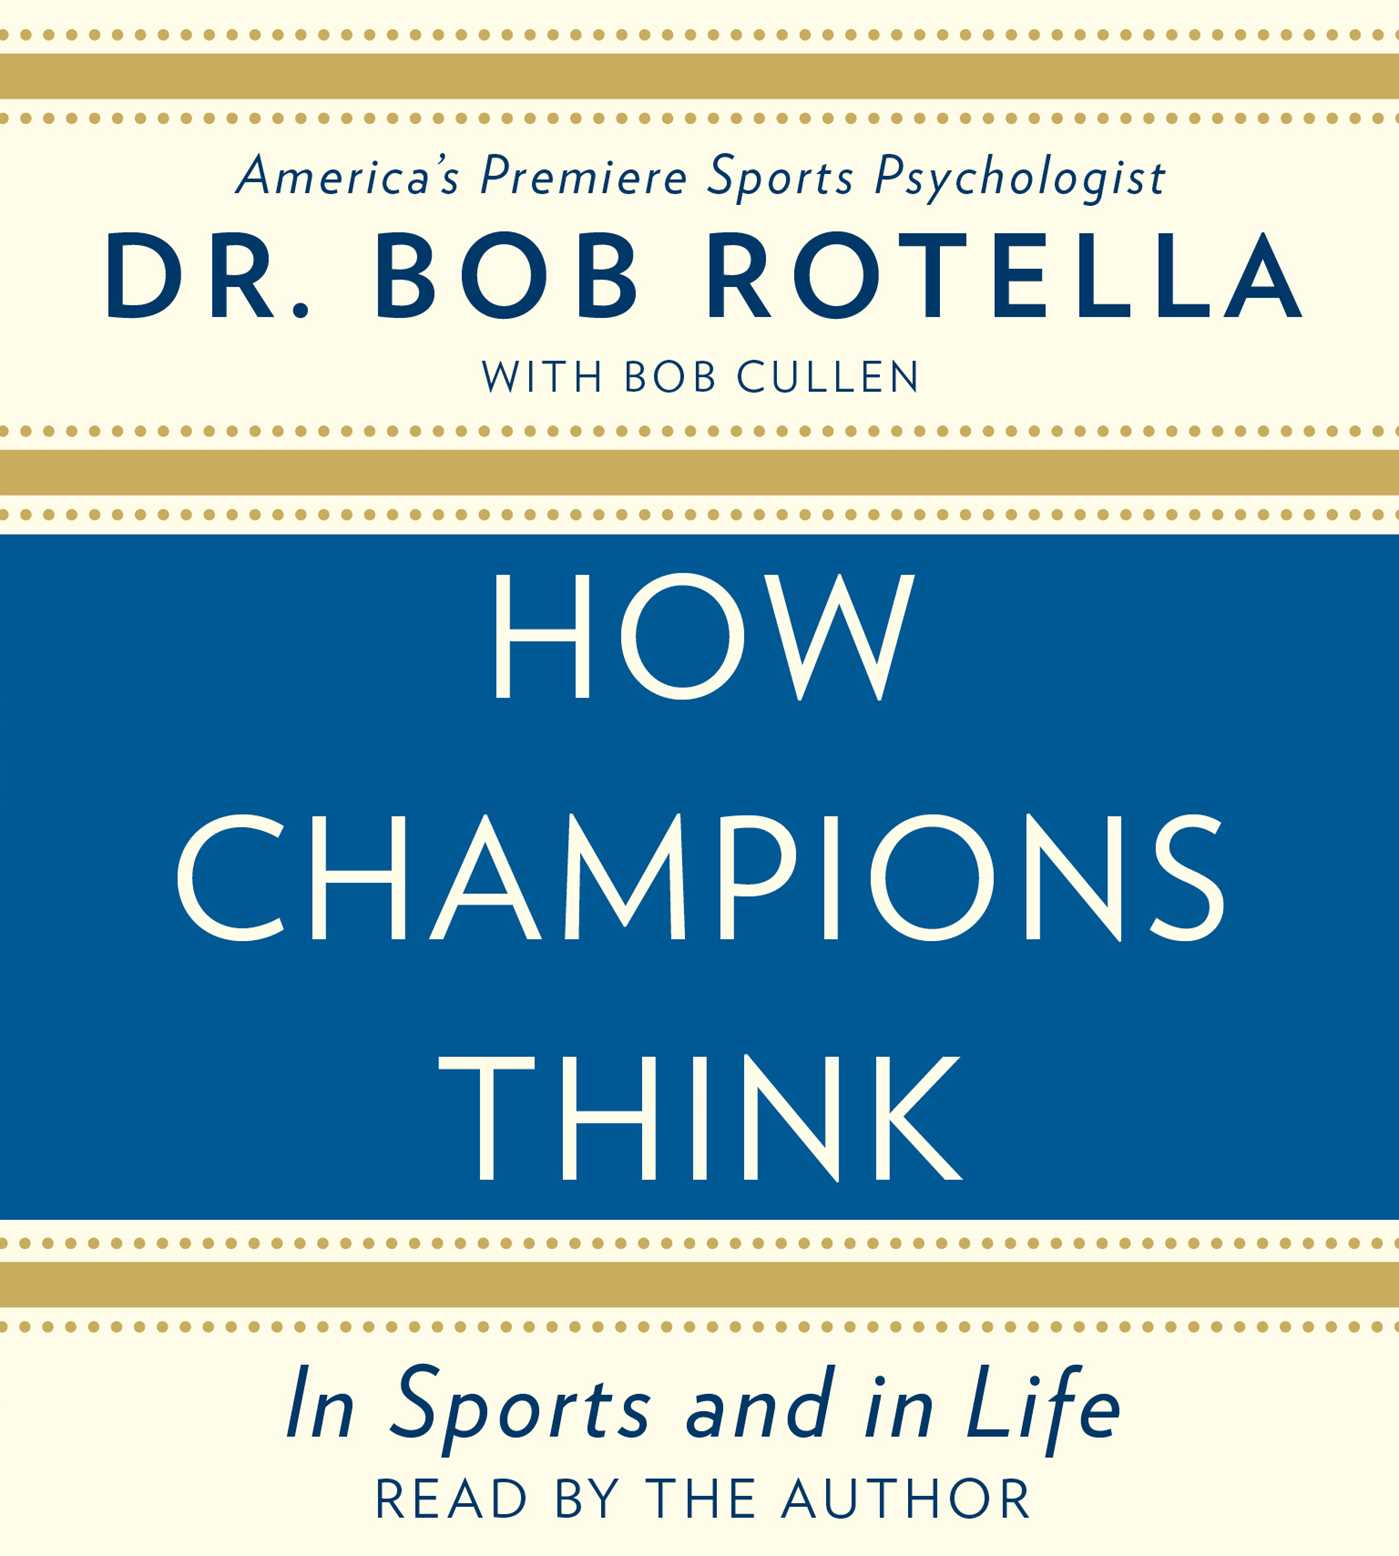 How-champions-think-9781442376298_hr